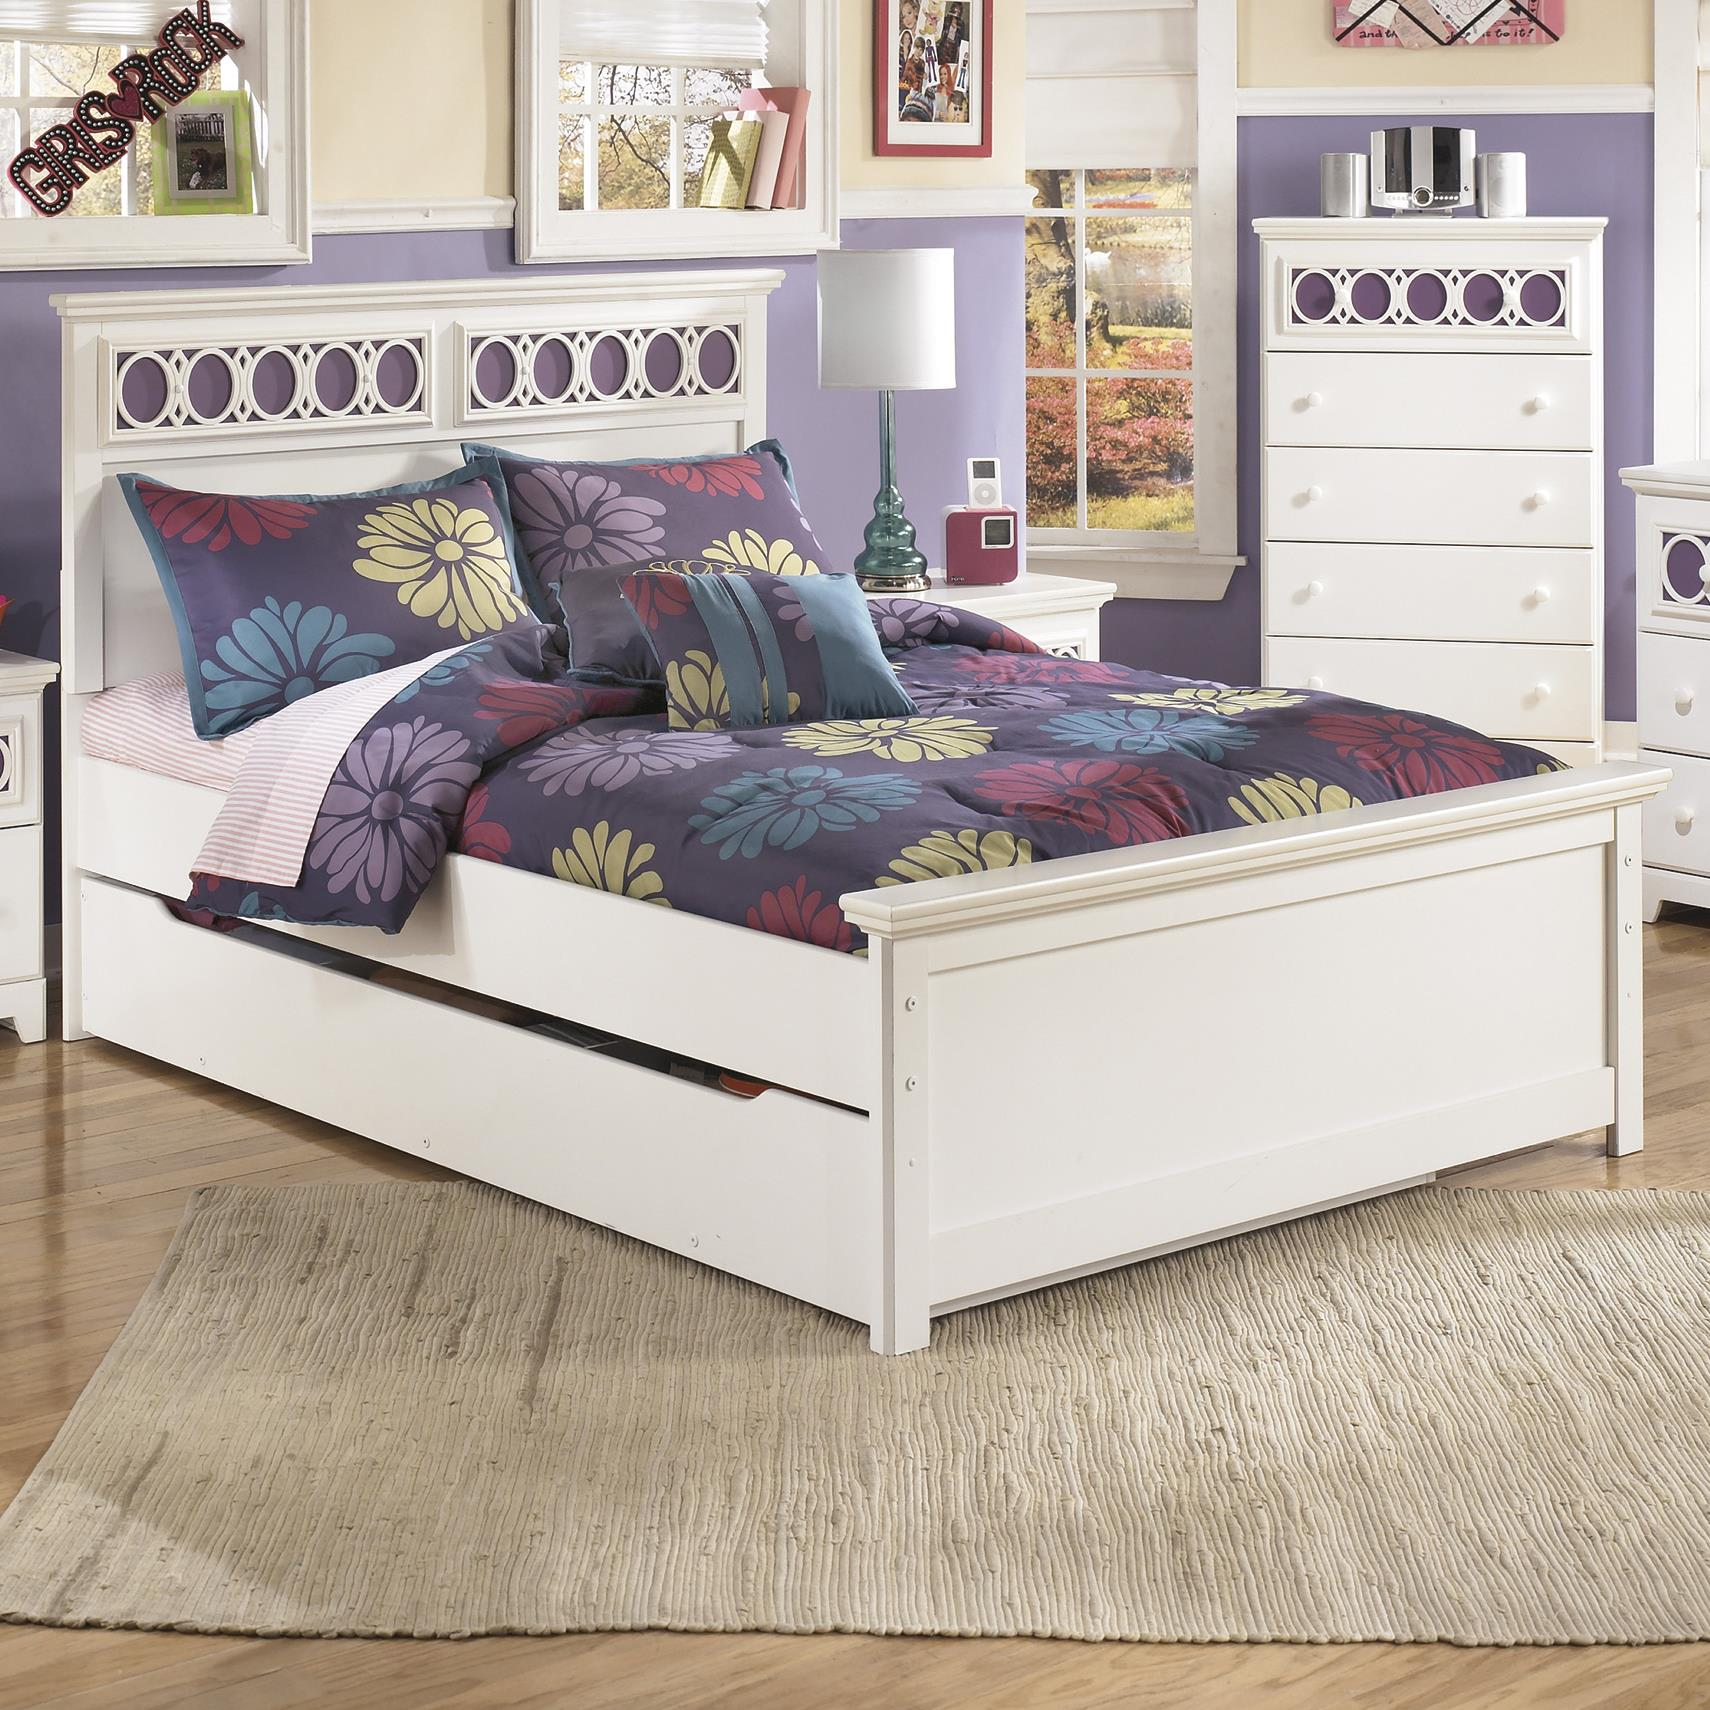 Signature Design by Ashley Zayley Full Panel Bed with Trundle Storage Box - Item Number: B131-87+84+86+60